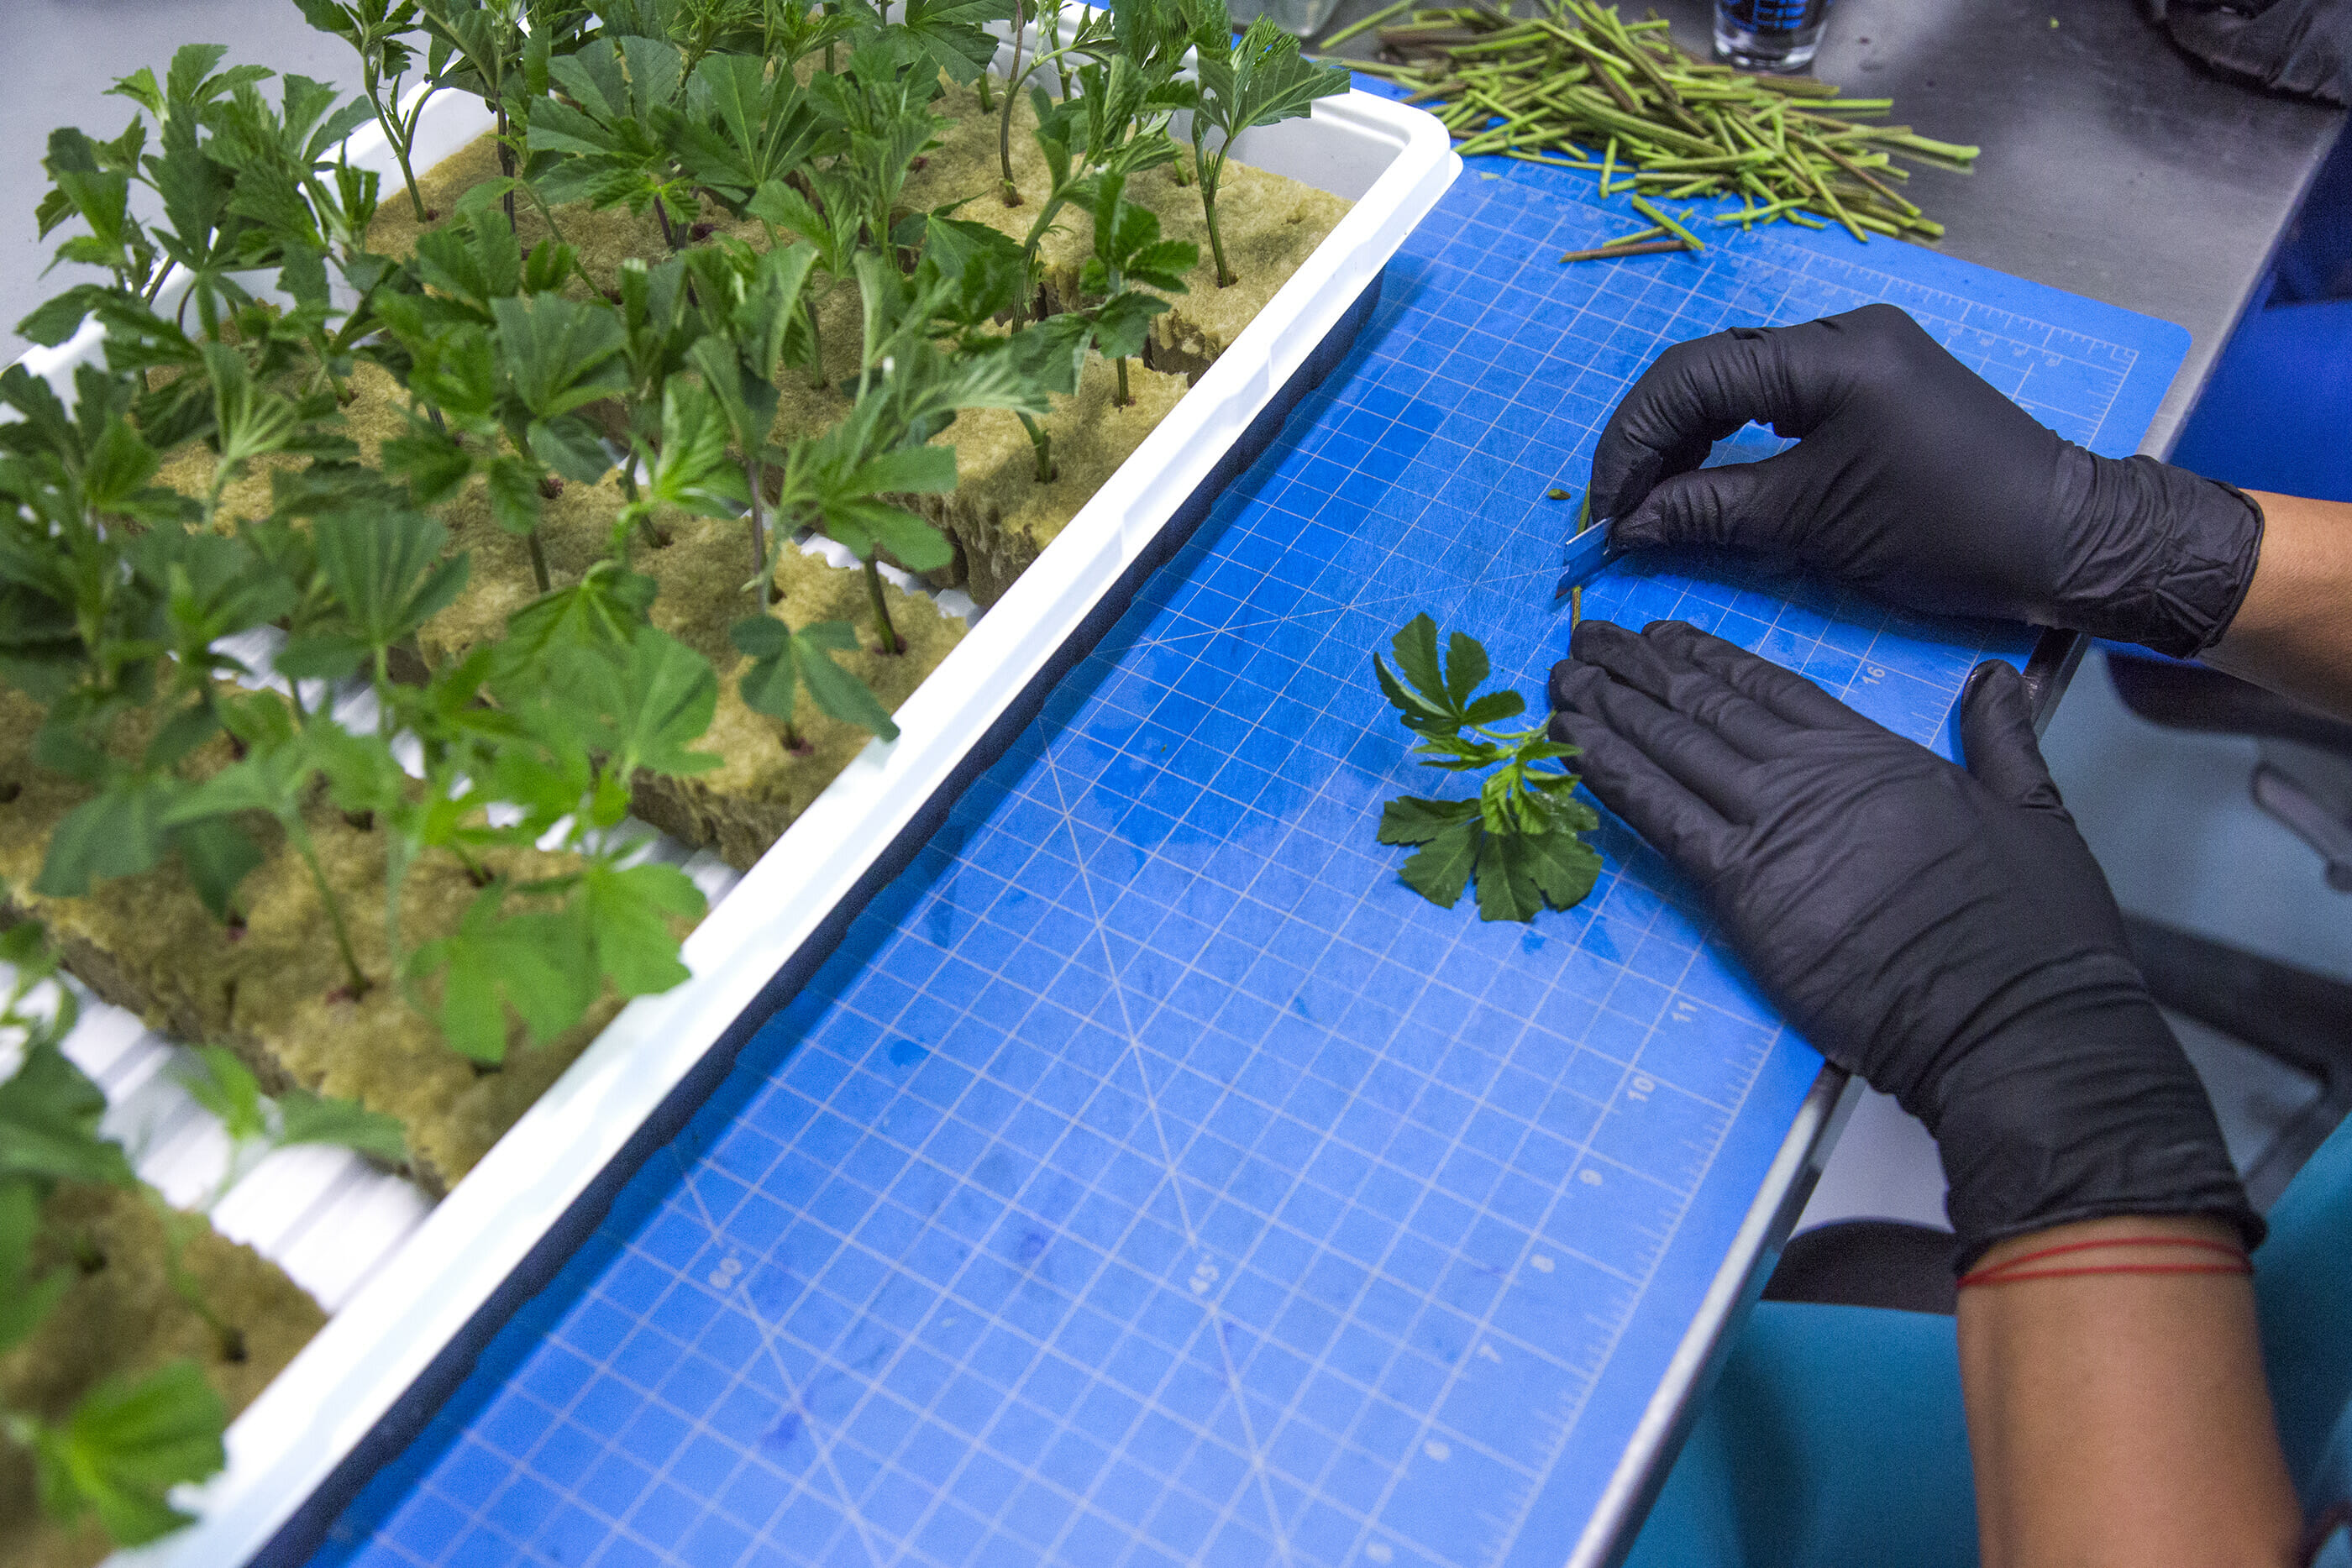 An employee prepares cannabis for planting in the propagation room at Reef Dispensaries